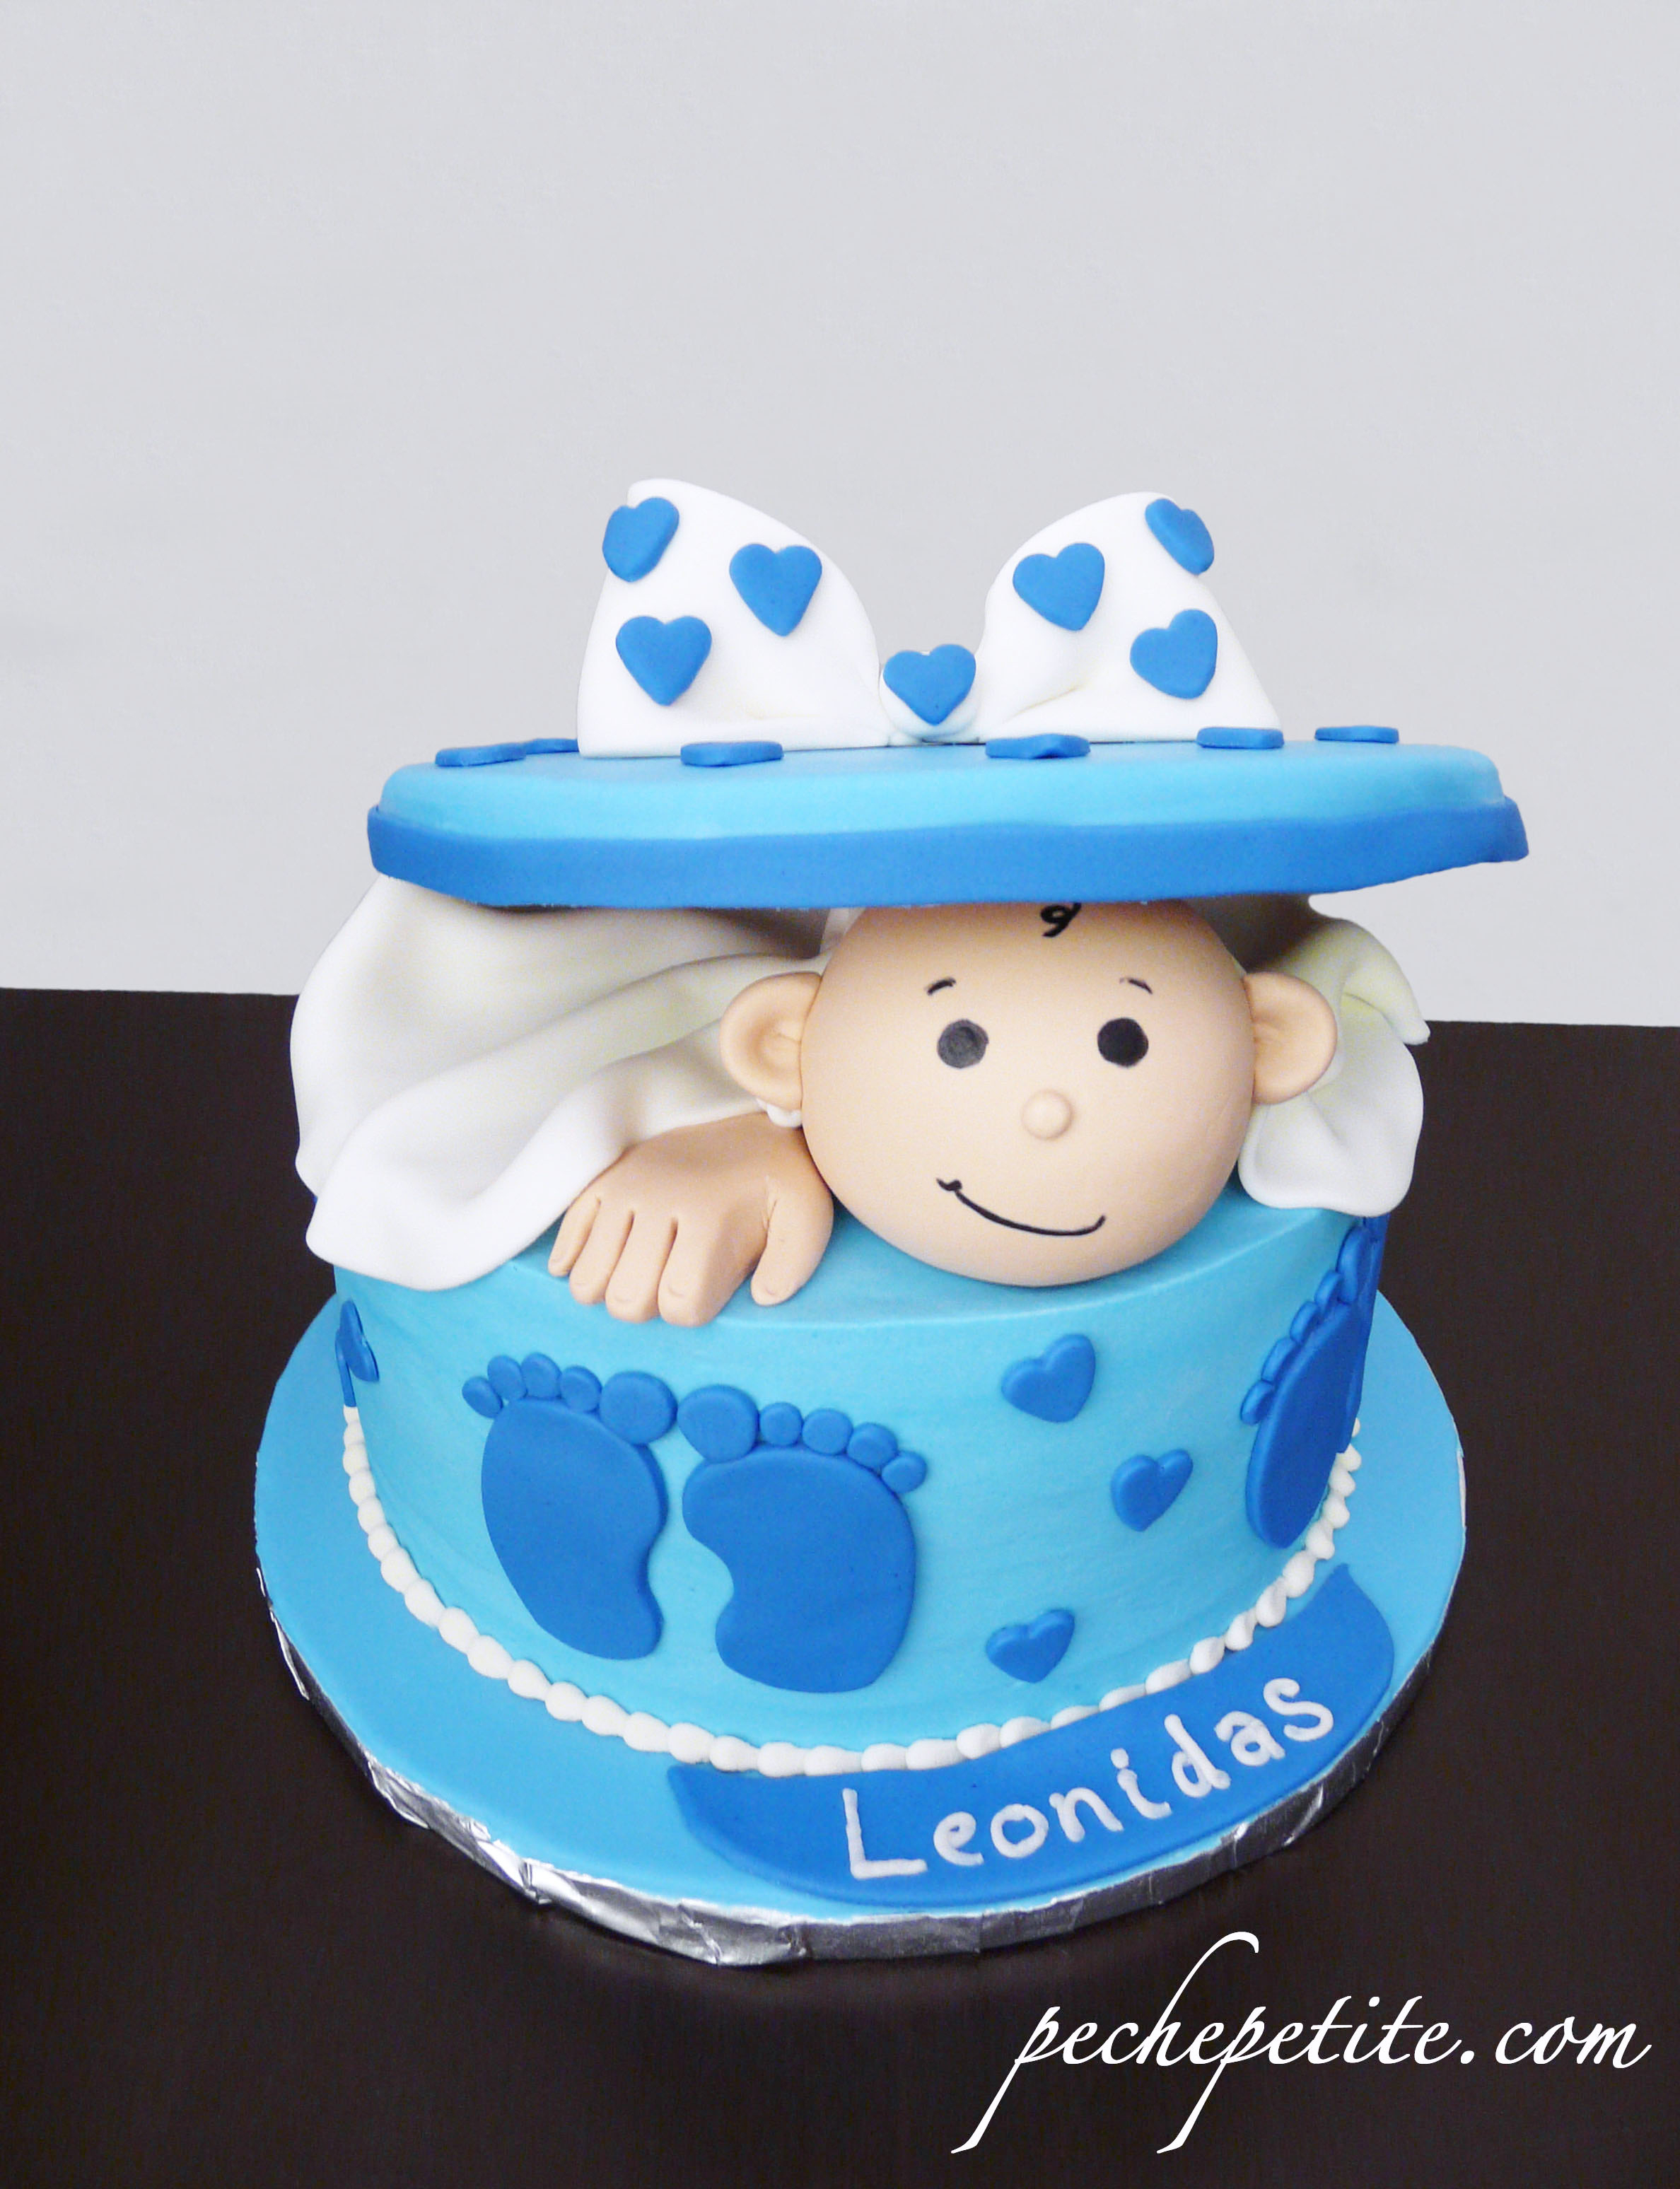 Fabulous Baby Boy Shower Cakes | Peche Petite intended for Review Baby Boy Shower Cakes